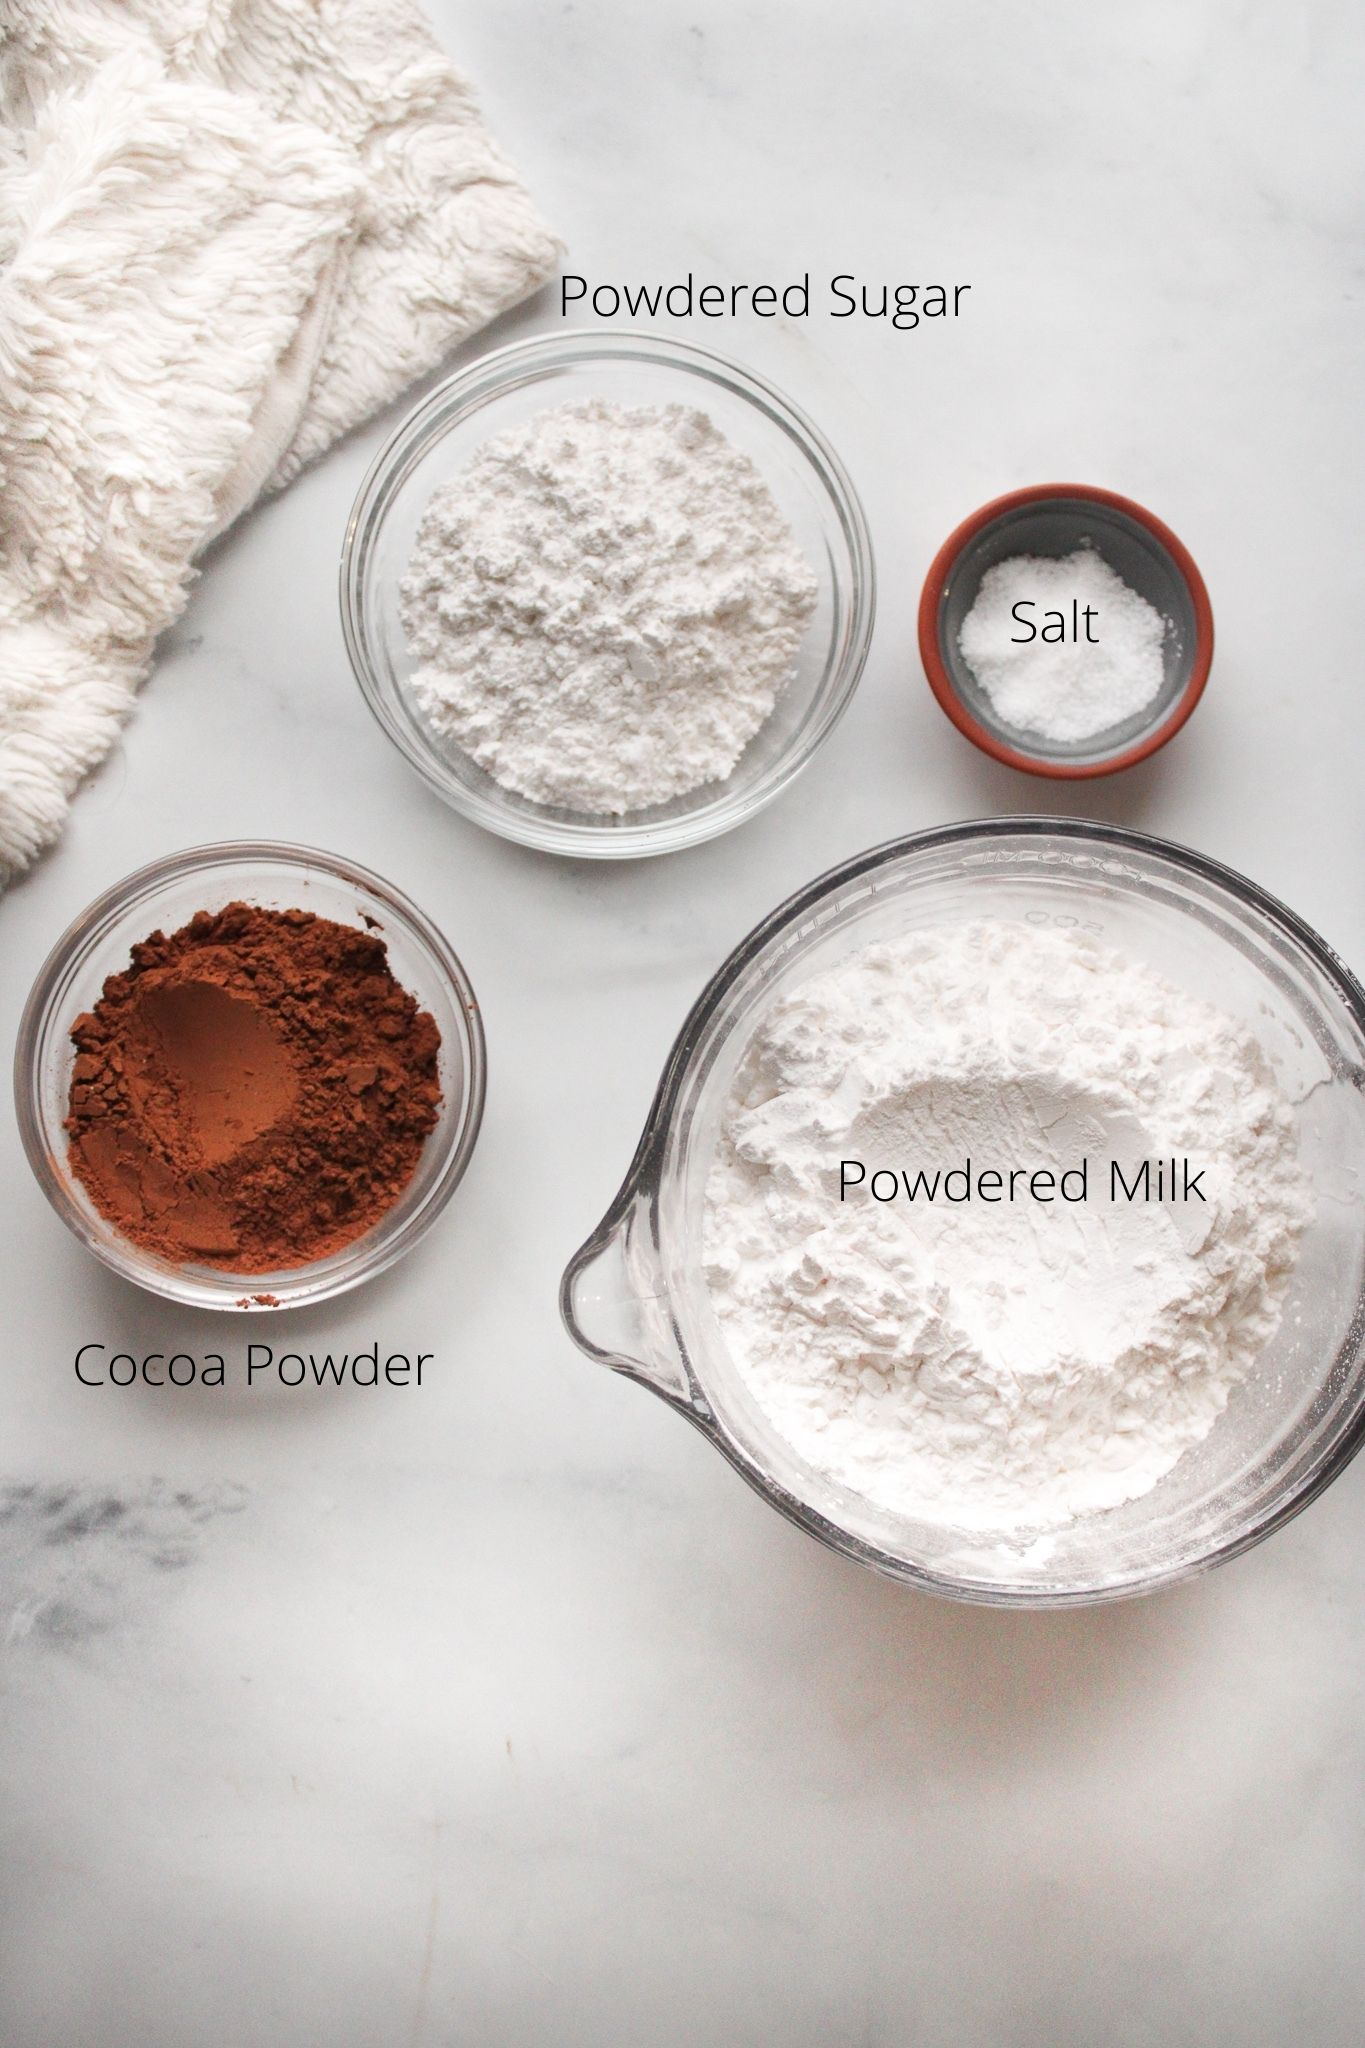 homemade hot chocolate mix ingredients powdered sugar, cocoa powder, powdered milk and salt in bowls ready to be mixed.